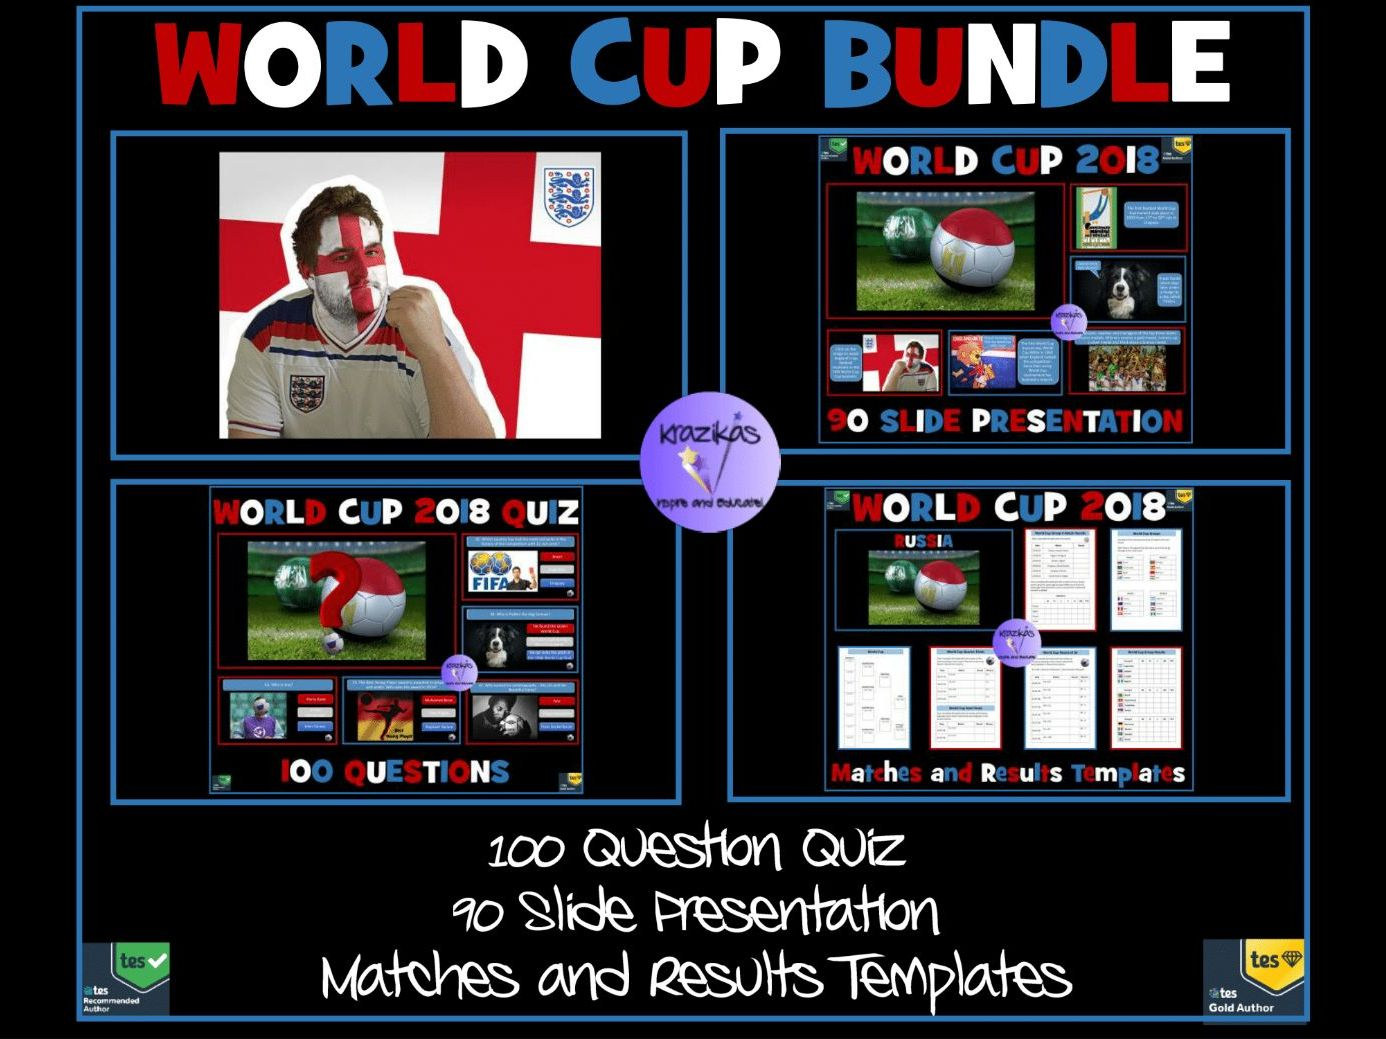 World Cup 2018 Bundle - Quiz, Presentation, Match Results Templates